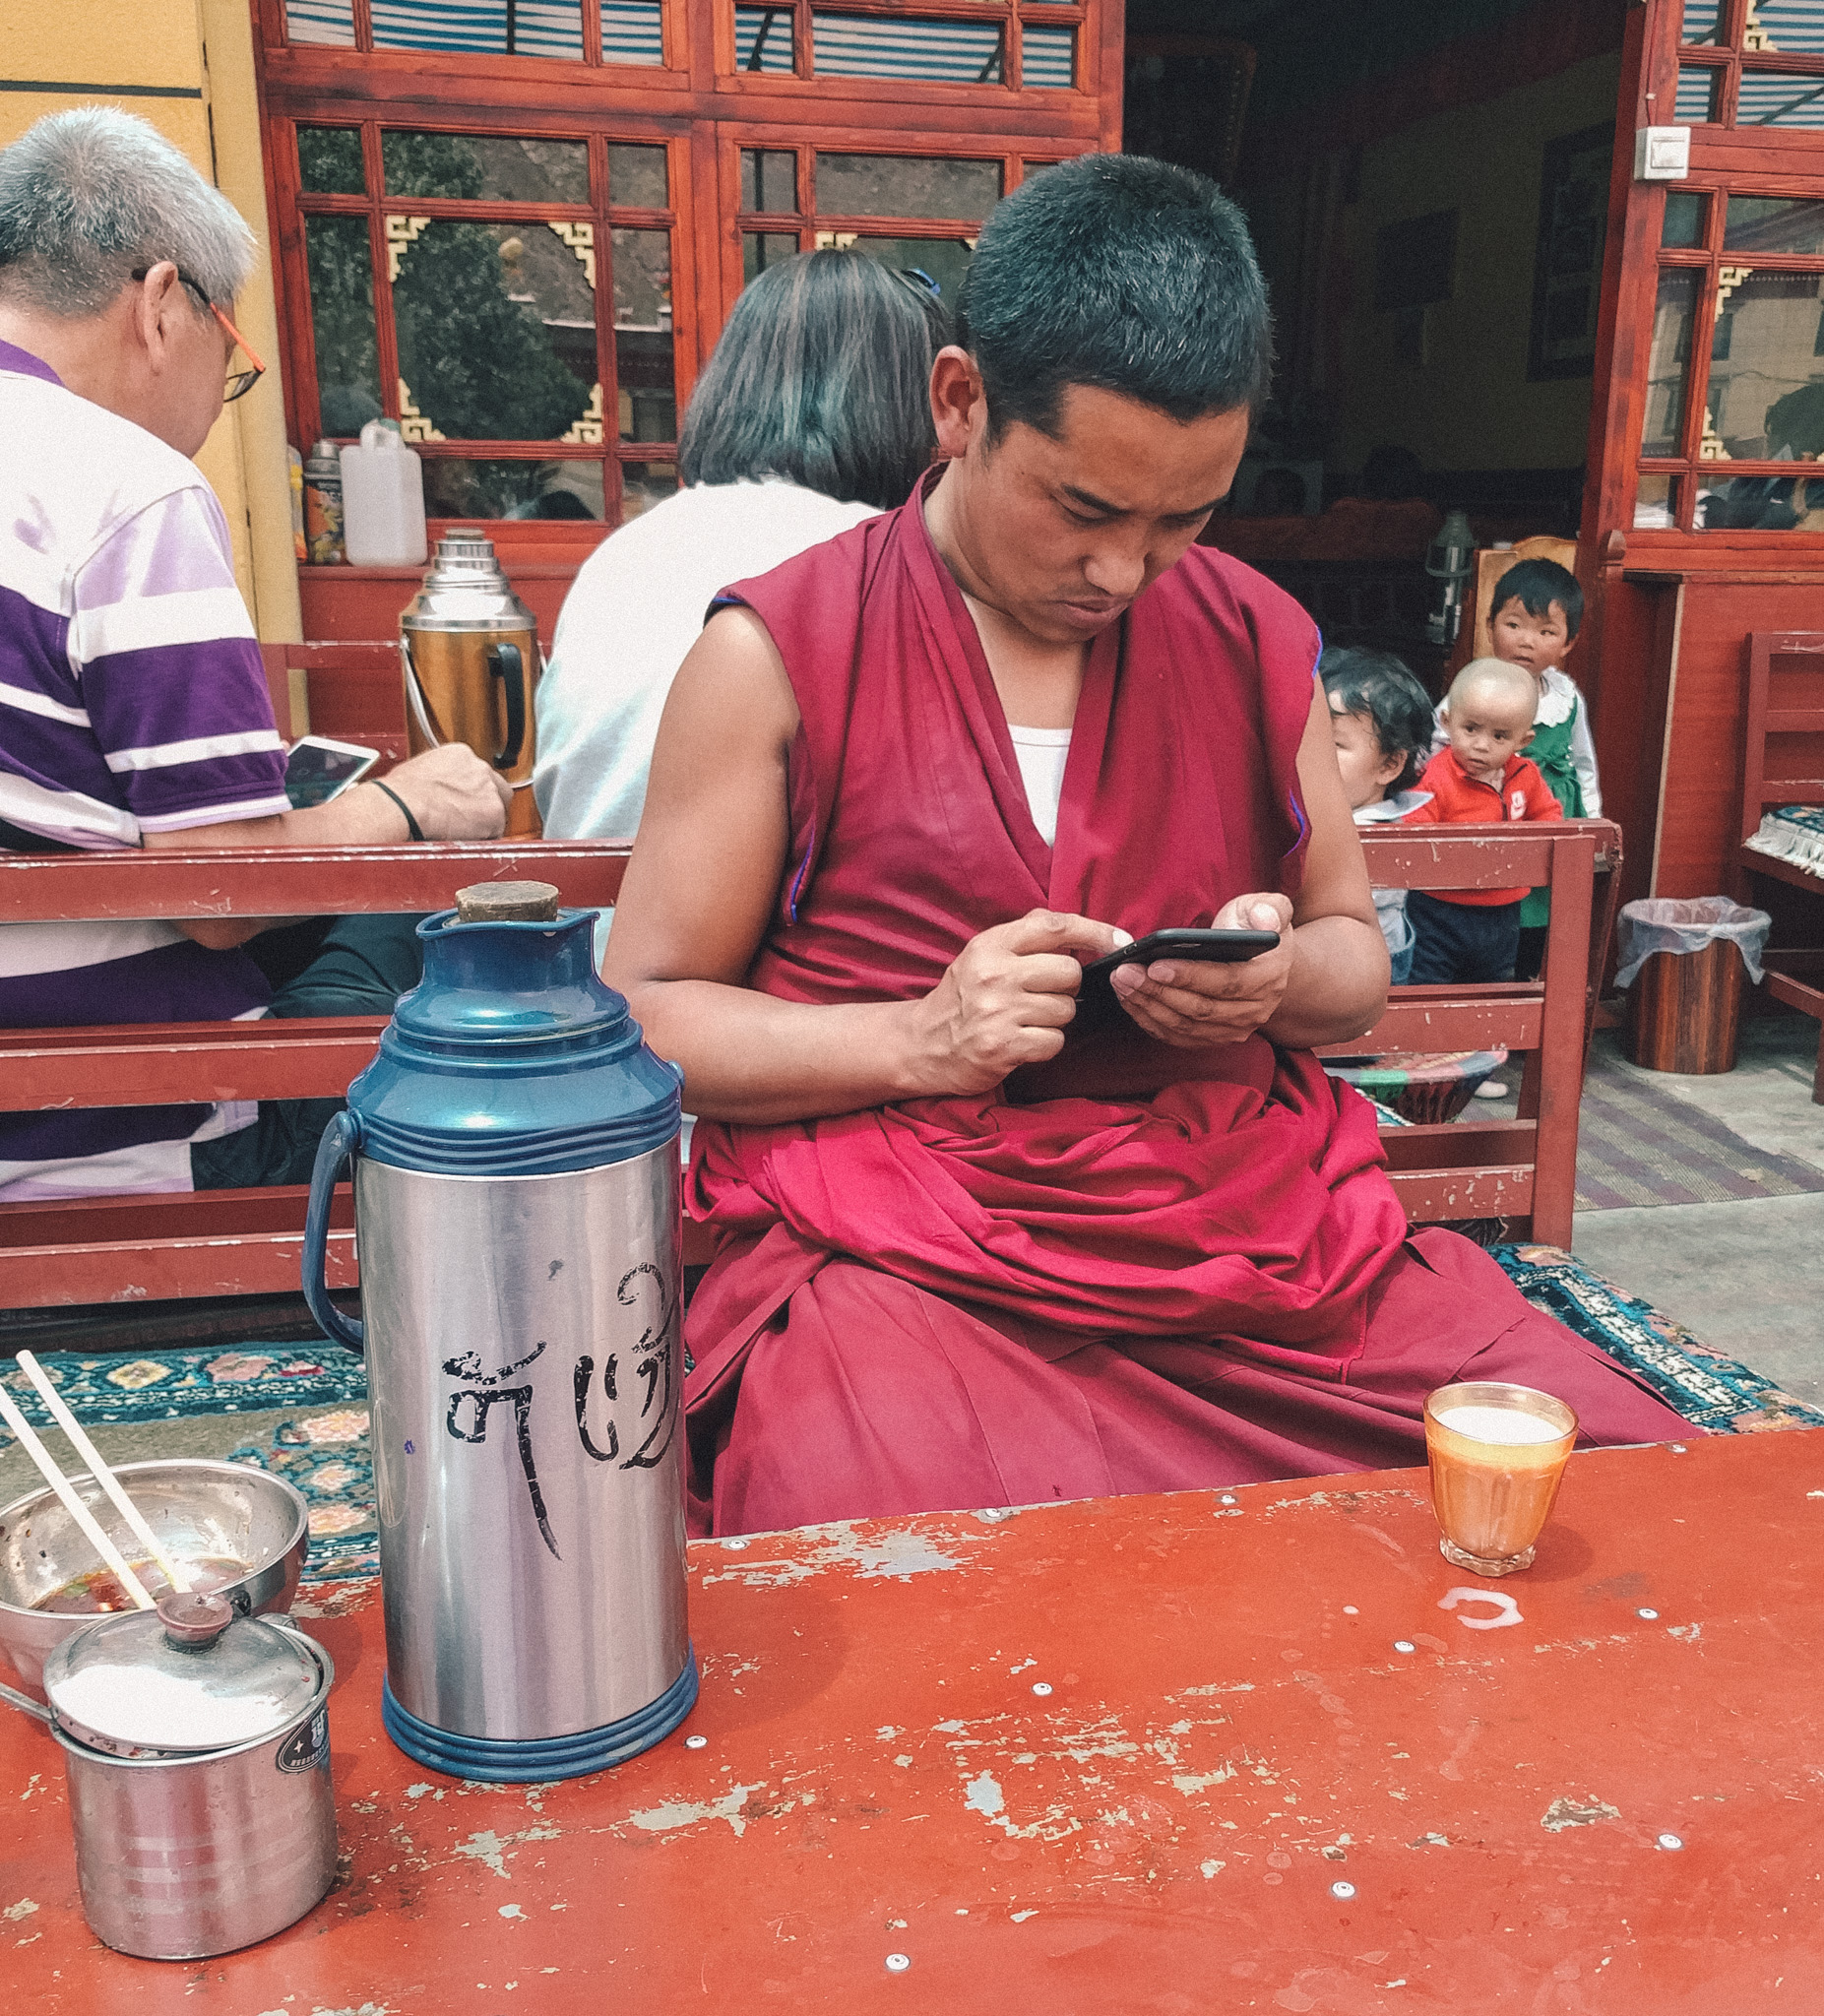 Monk on a cellphone in Tibet